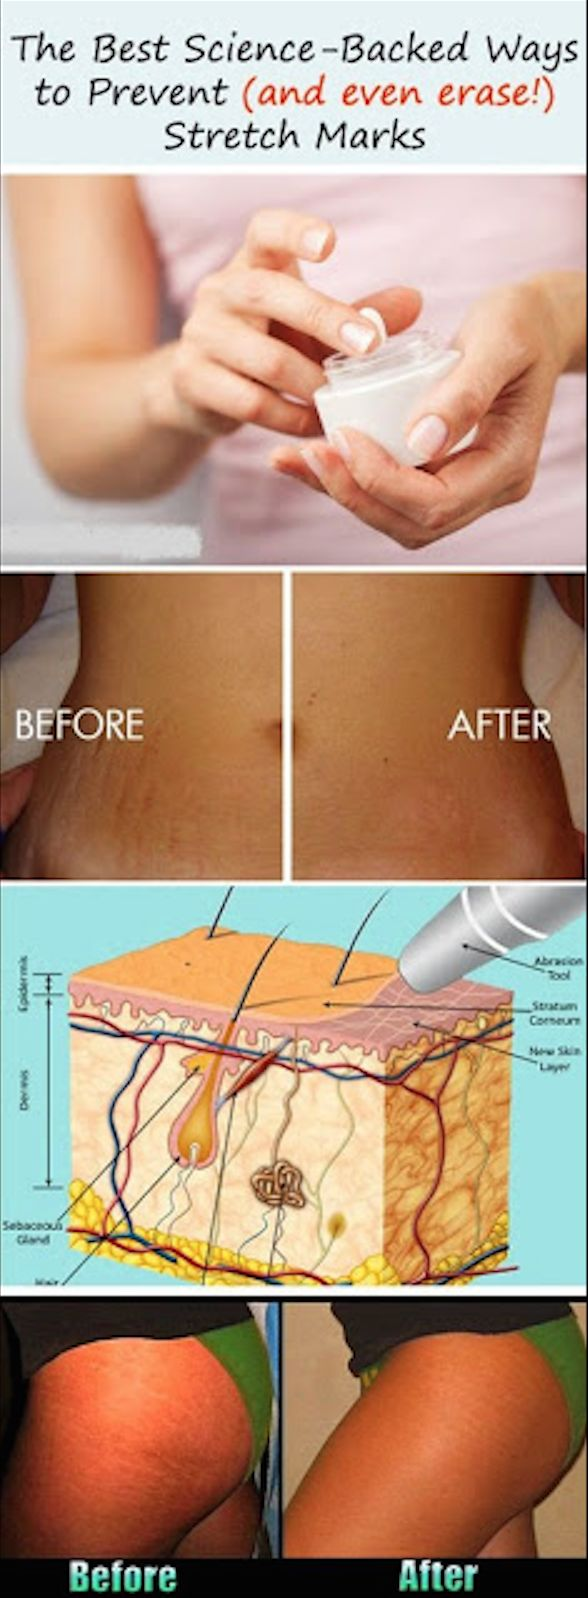 preventing and erasing stretch marks